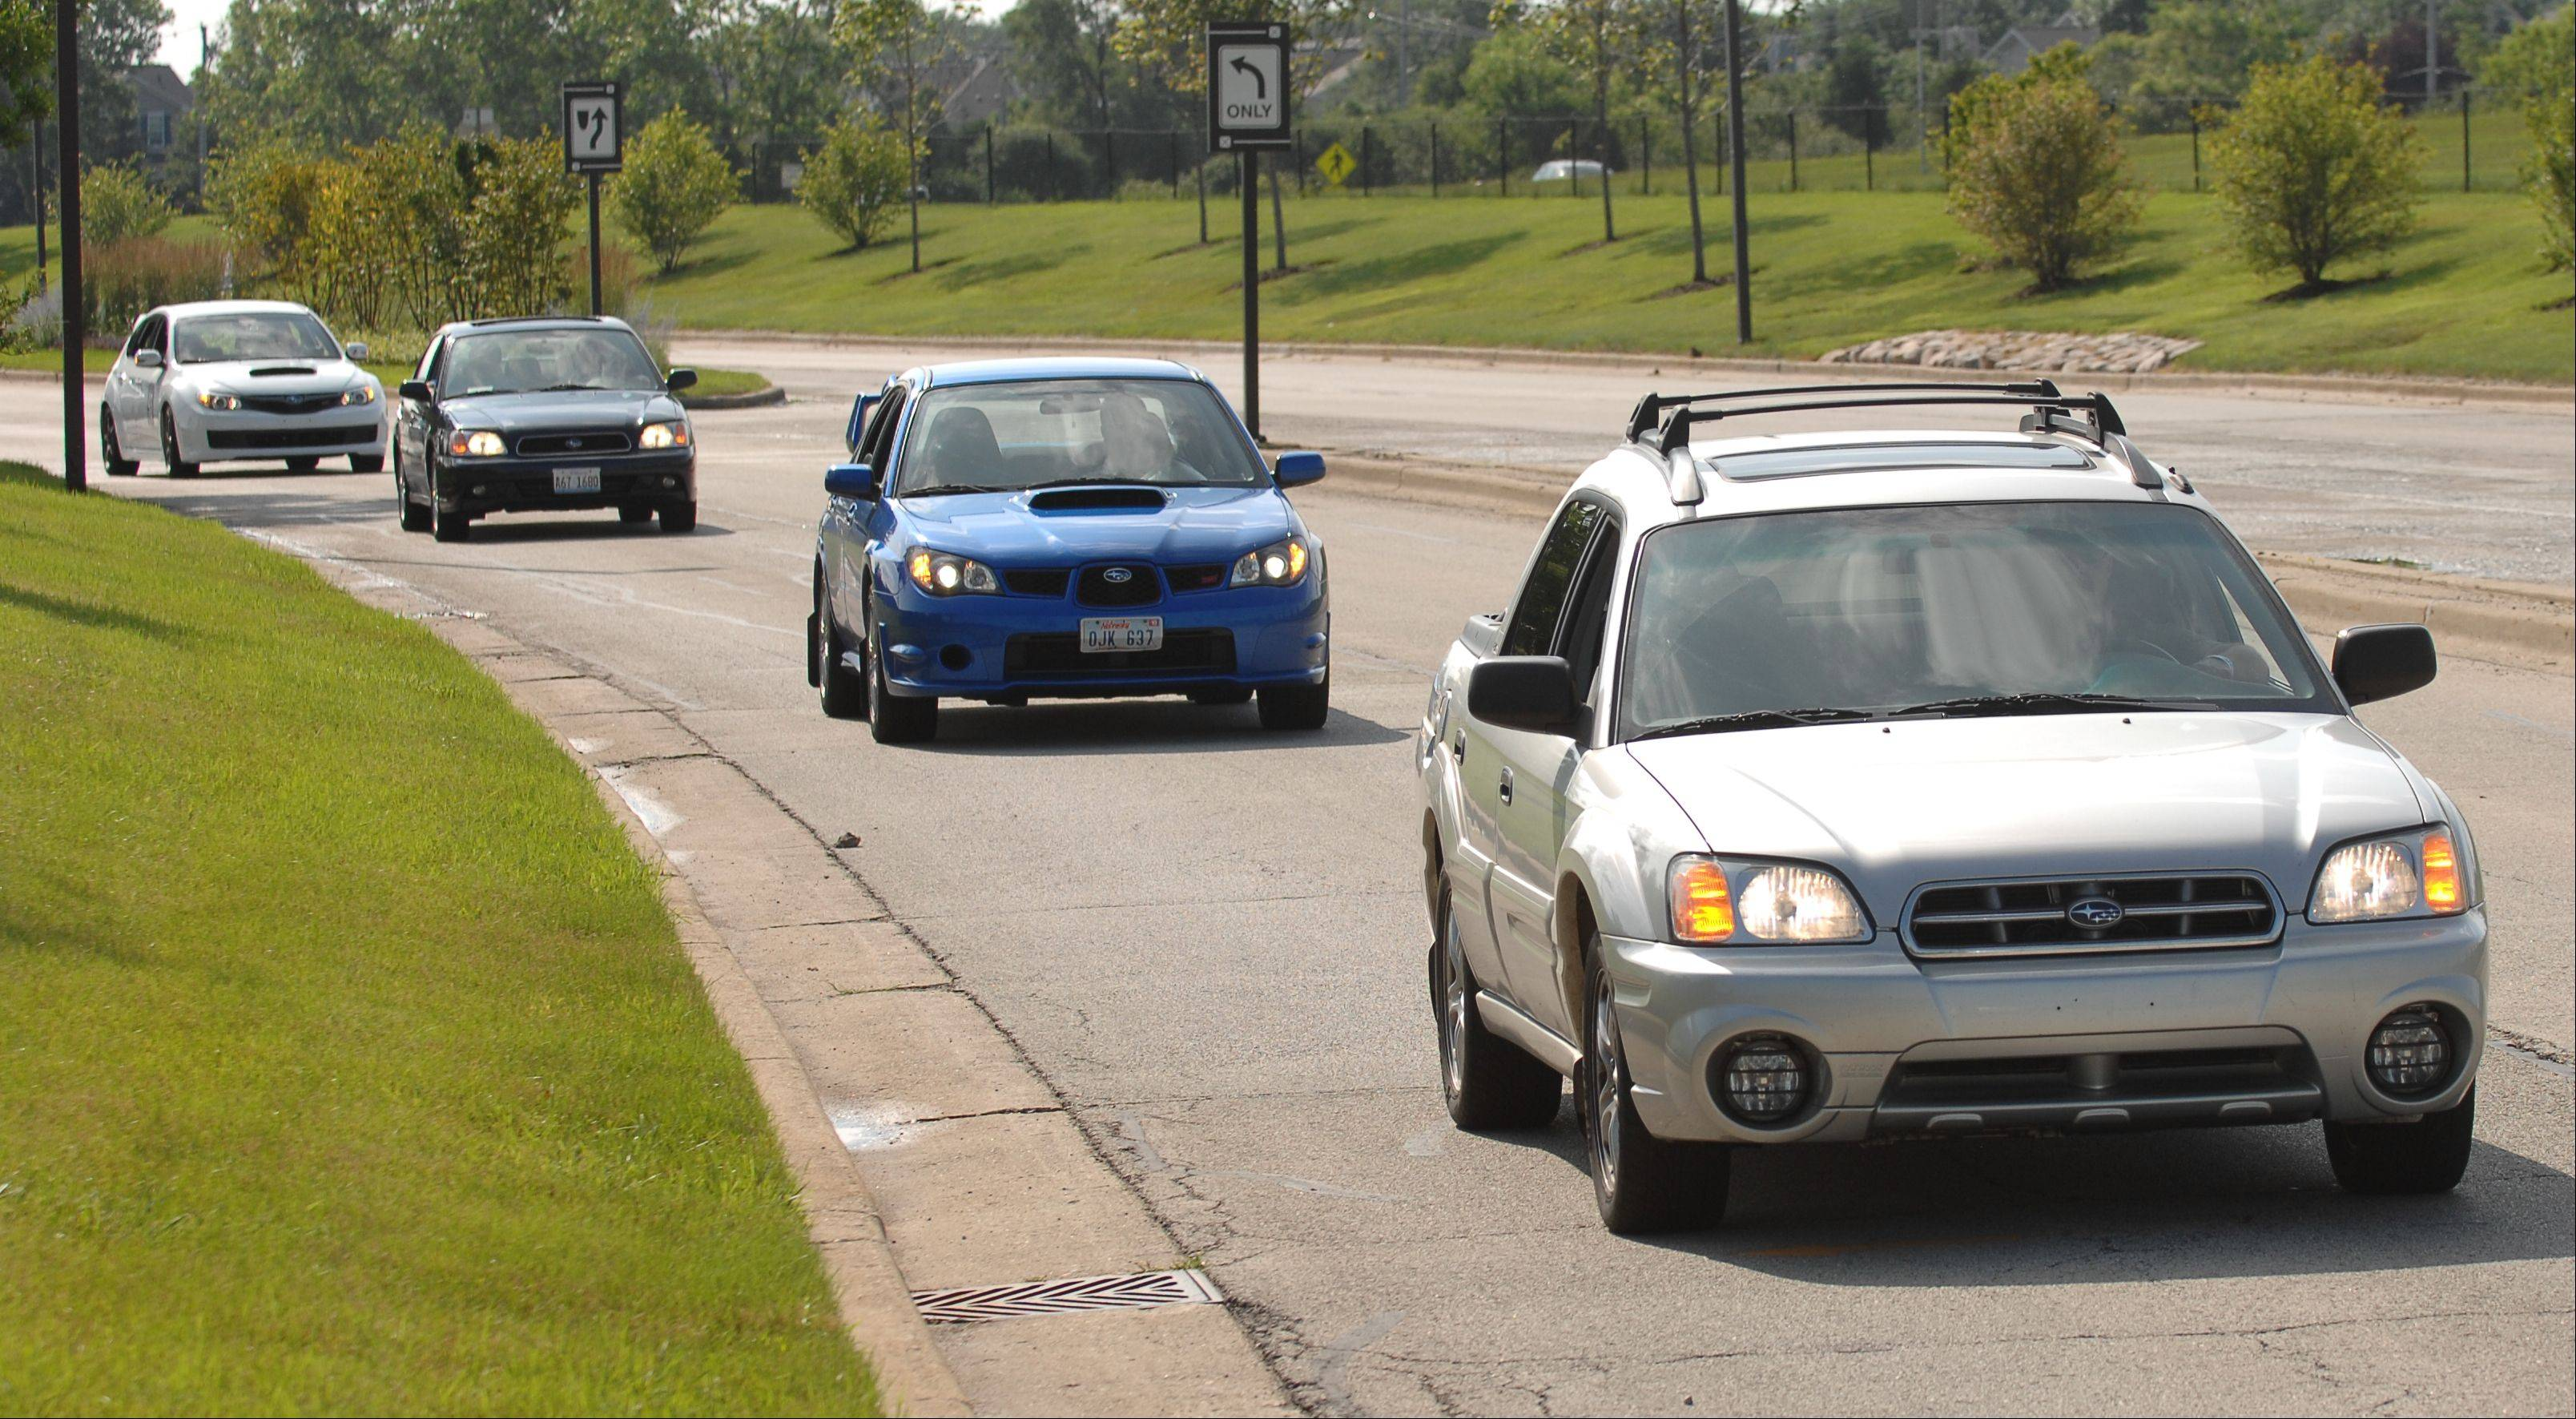 Itasca hopes to break its 2009 world record of 339 Subarus in a parade Saturday morning as part of the village's Itasca Fest activities.